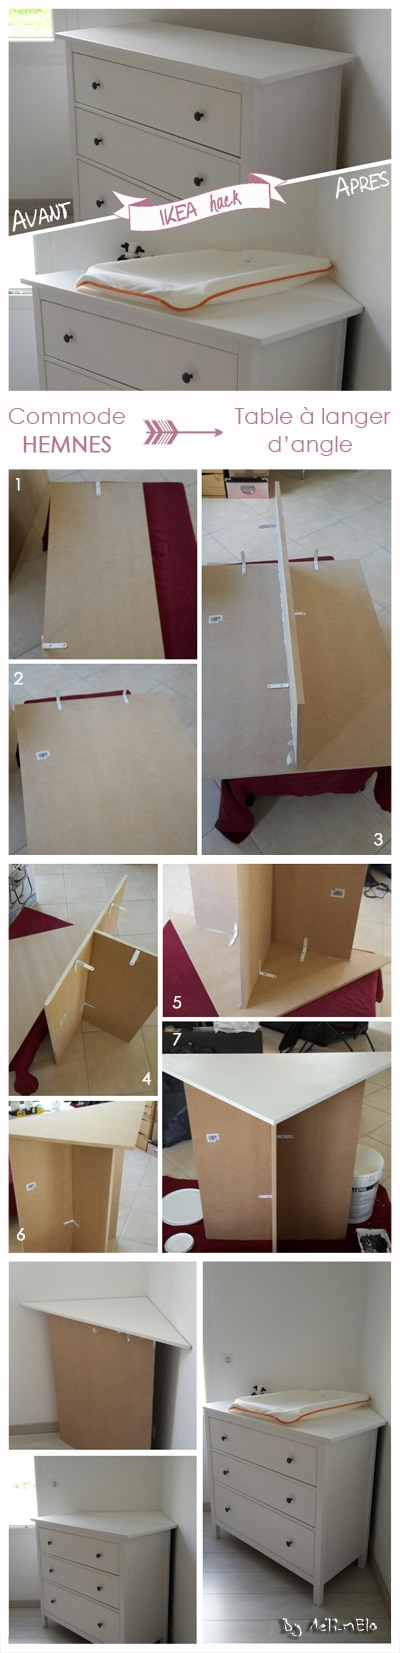 Table langer d 39 angle diy ikea hack - Customiser un meuble de salle de bain ...